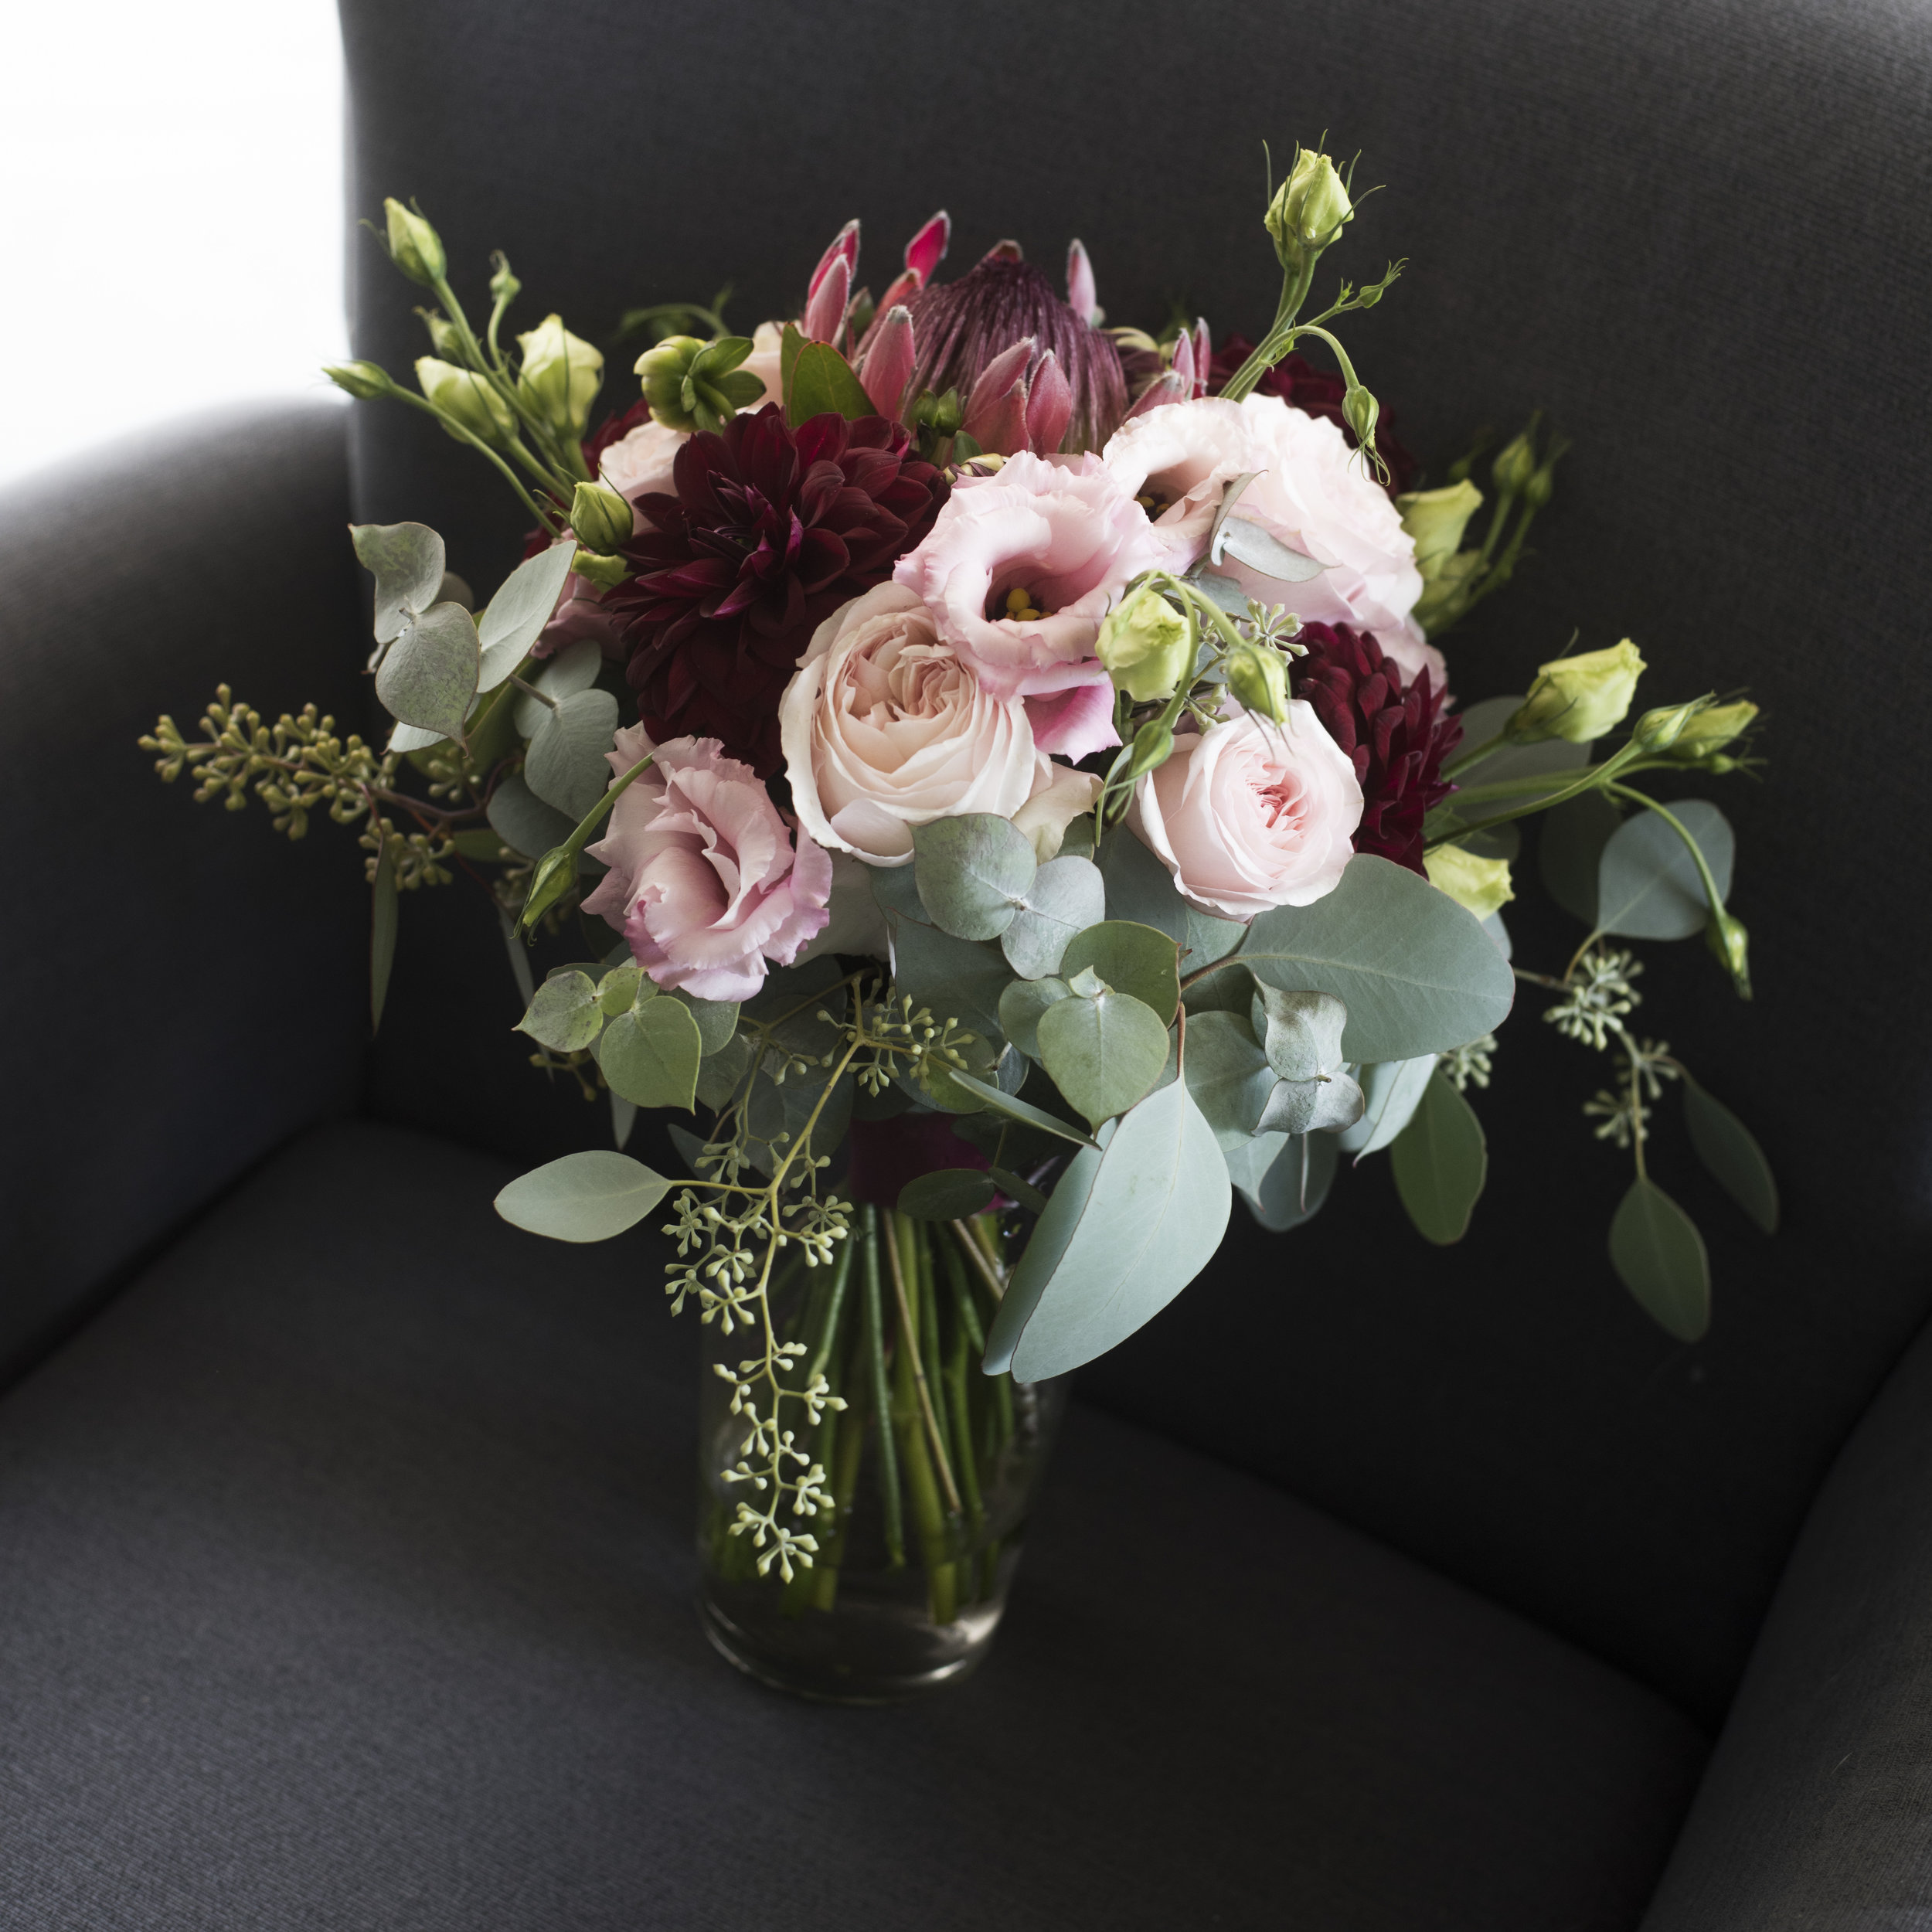 Blush David Austin roses, pink lisianthus, burgundy dahlia, pink protea and native foliage bound in burgundy ribbon.